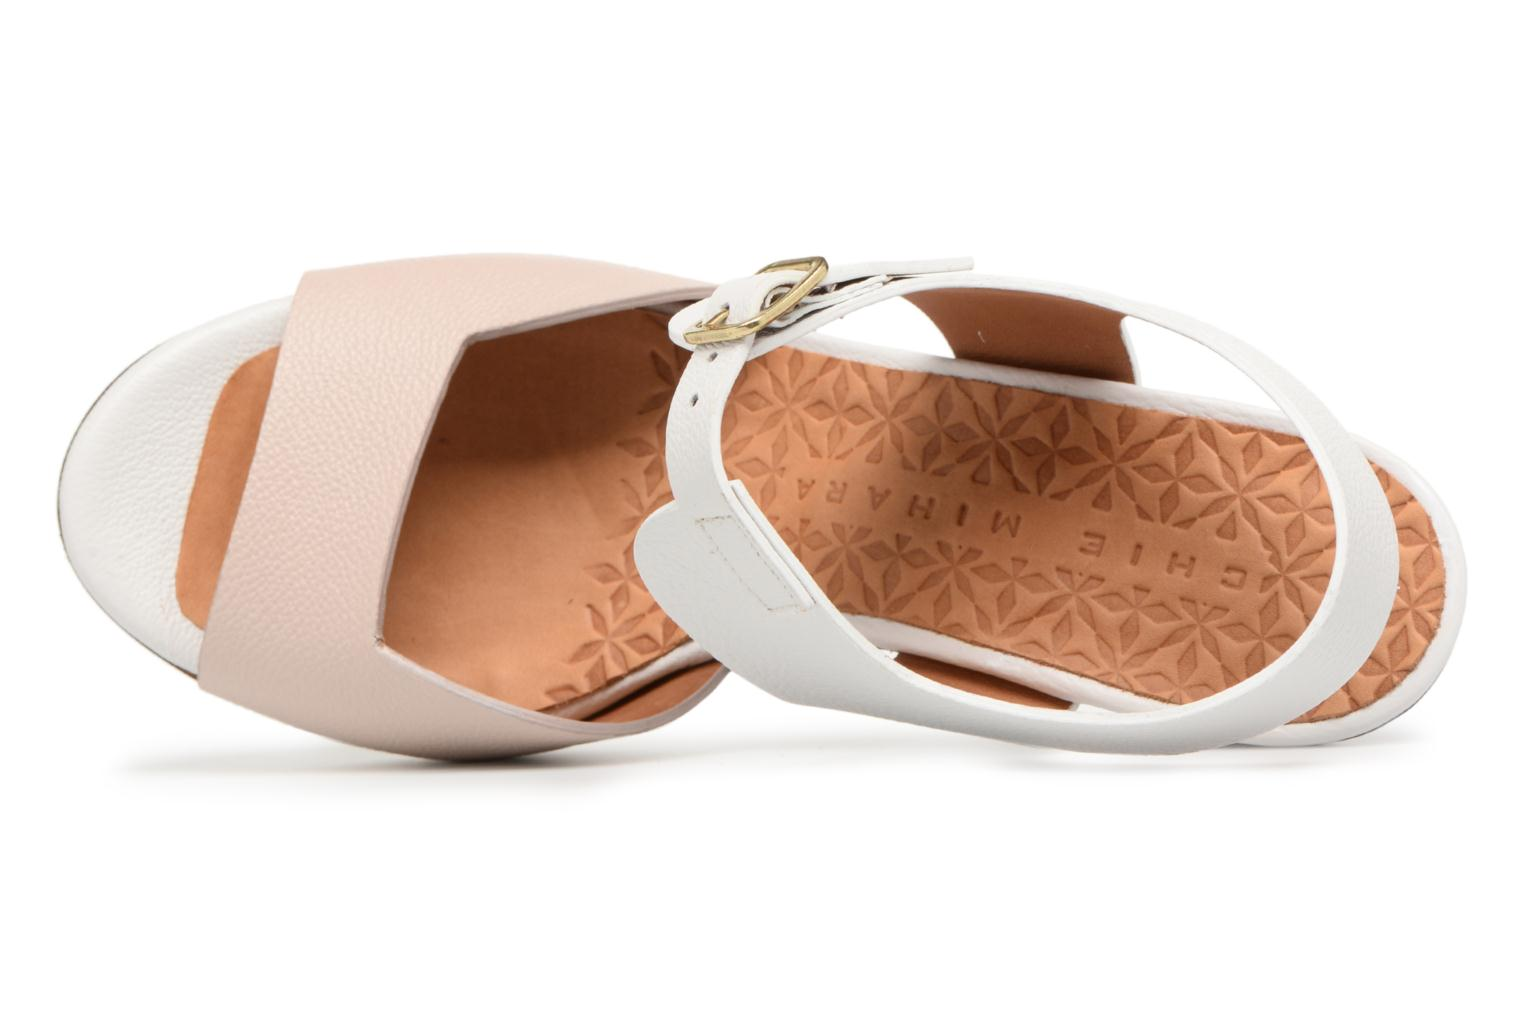 Sandals Chie Mihara Loteria32 Beige view from the left